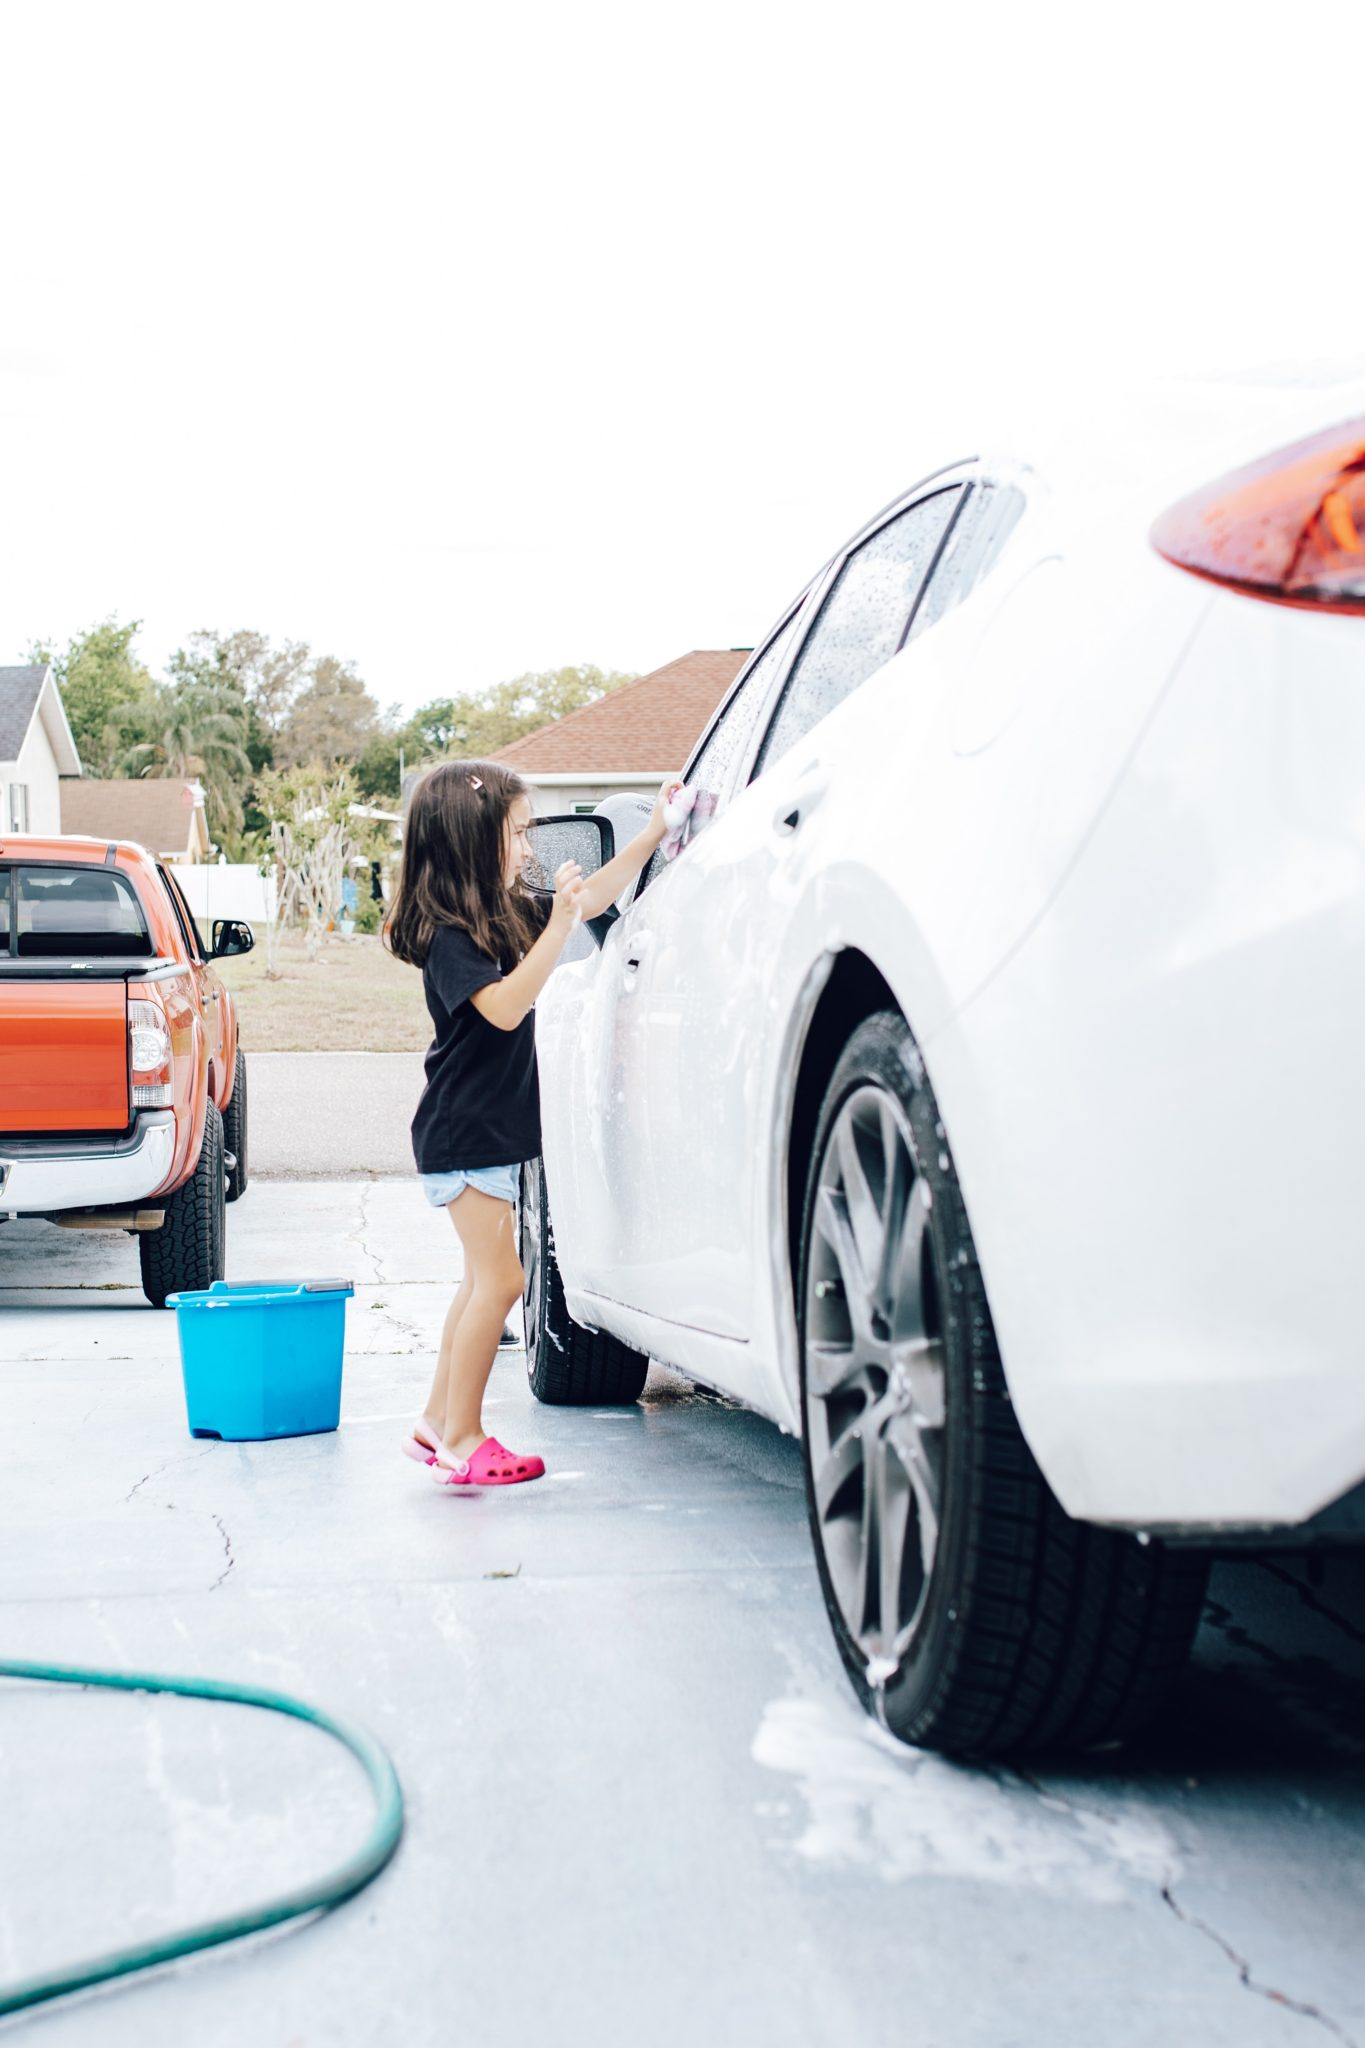 Before you head out on those spring and summer road trips, you must perform these car car tips, especially after a brutal winter. Click to learn more about Jiffy Lube's services. #JLIPartner #CarCareMonth #NationalCarCareMonth